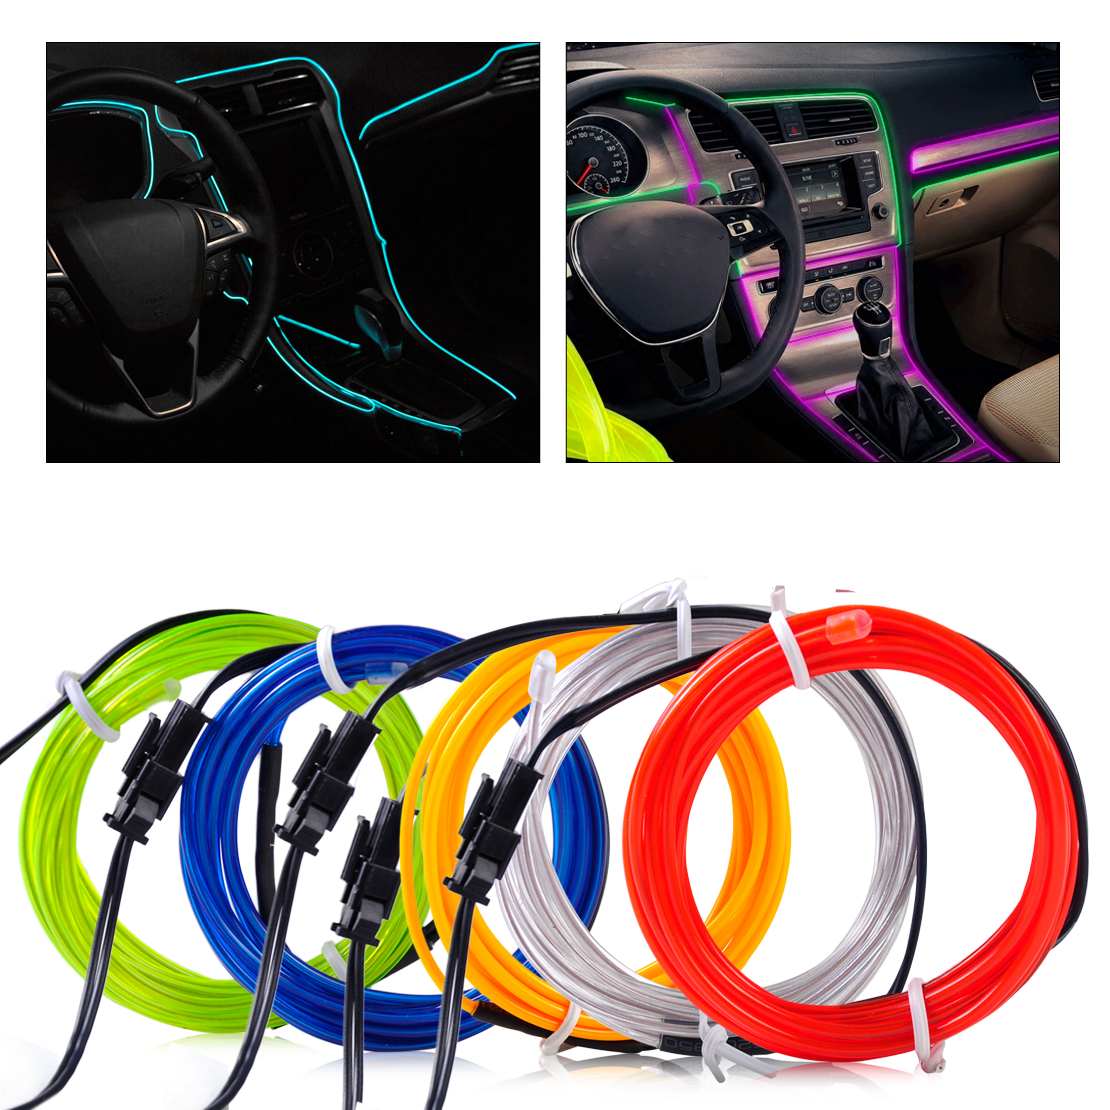 1x New 3mm 2m El Wire Flexible Stylings Car Interior Decor Fluorescent Neon Light Strip Cold